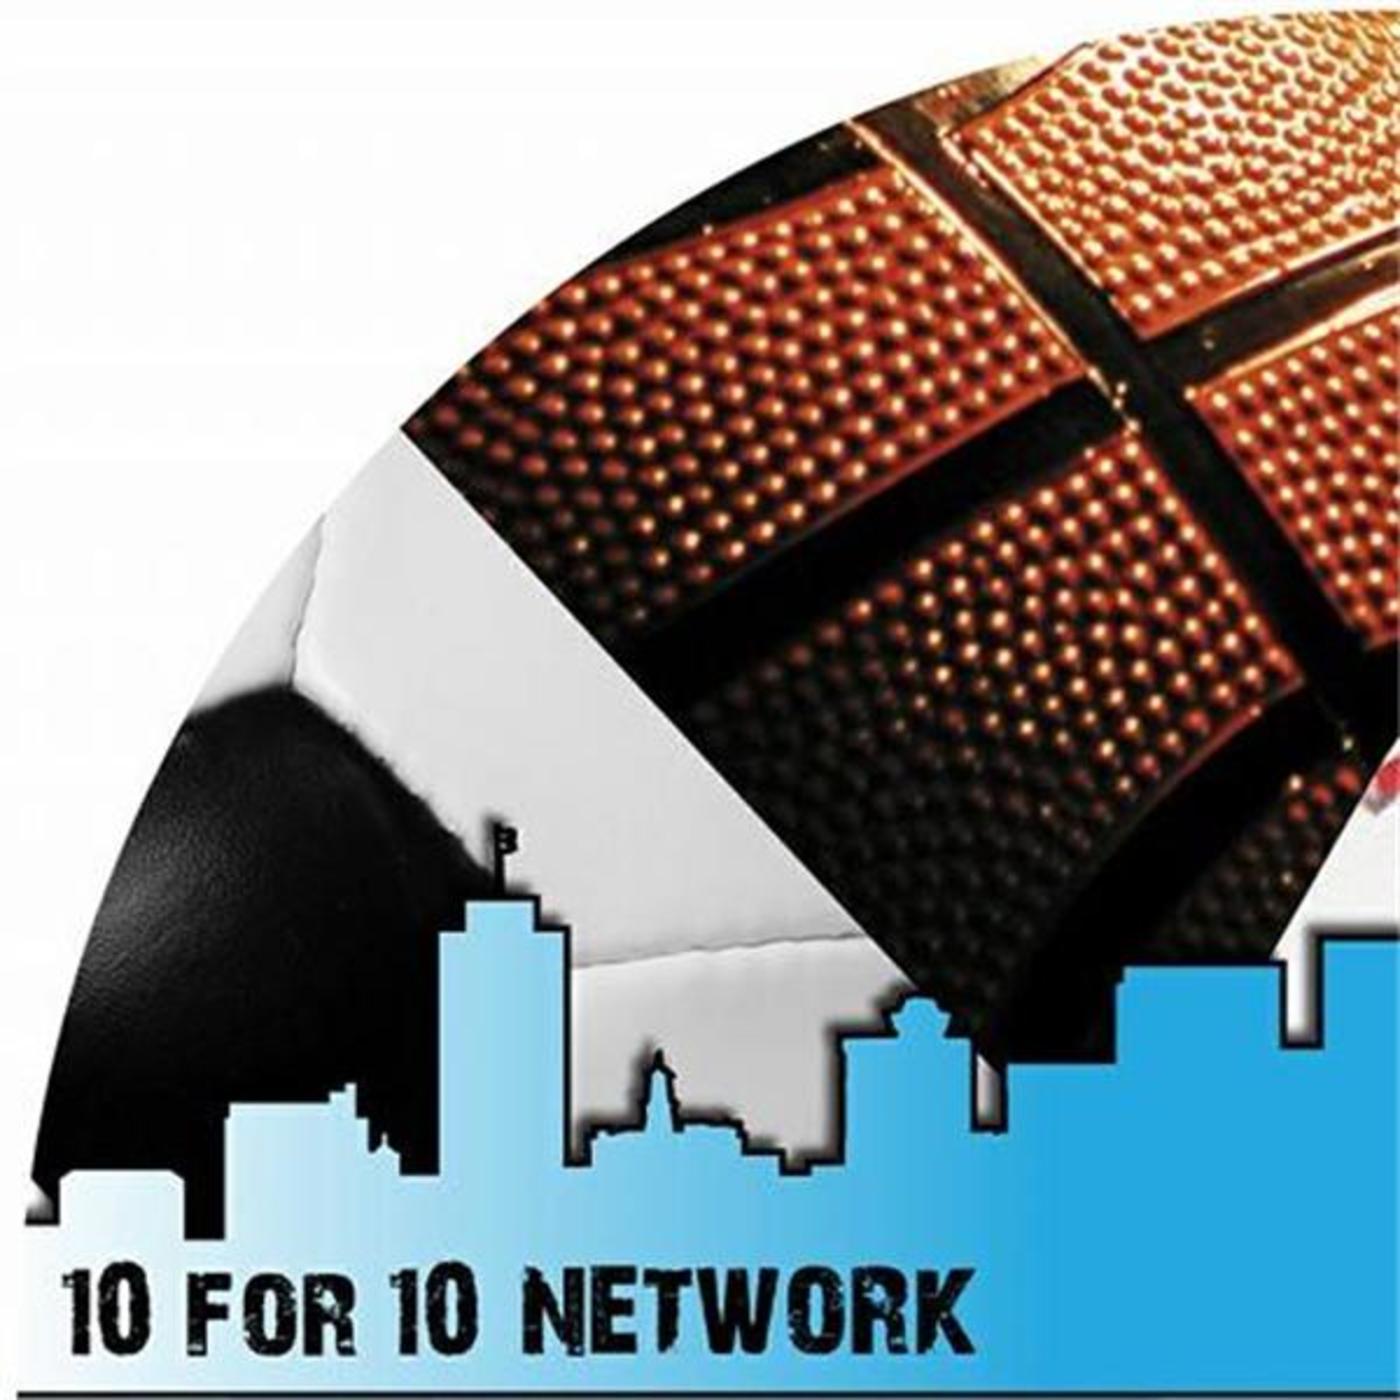 10 for 10 Network